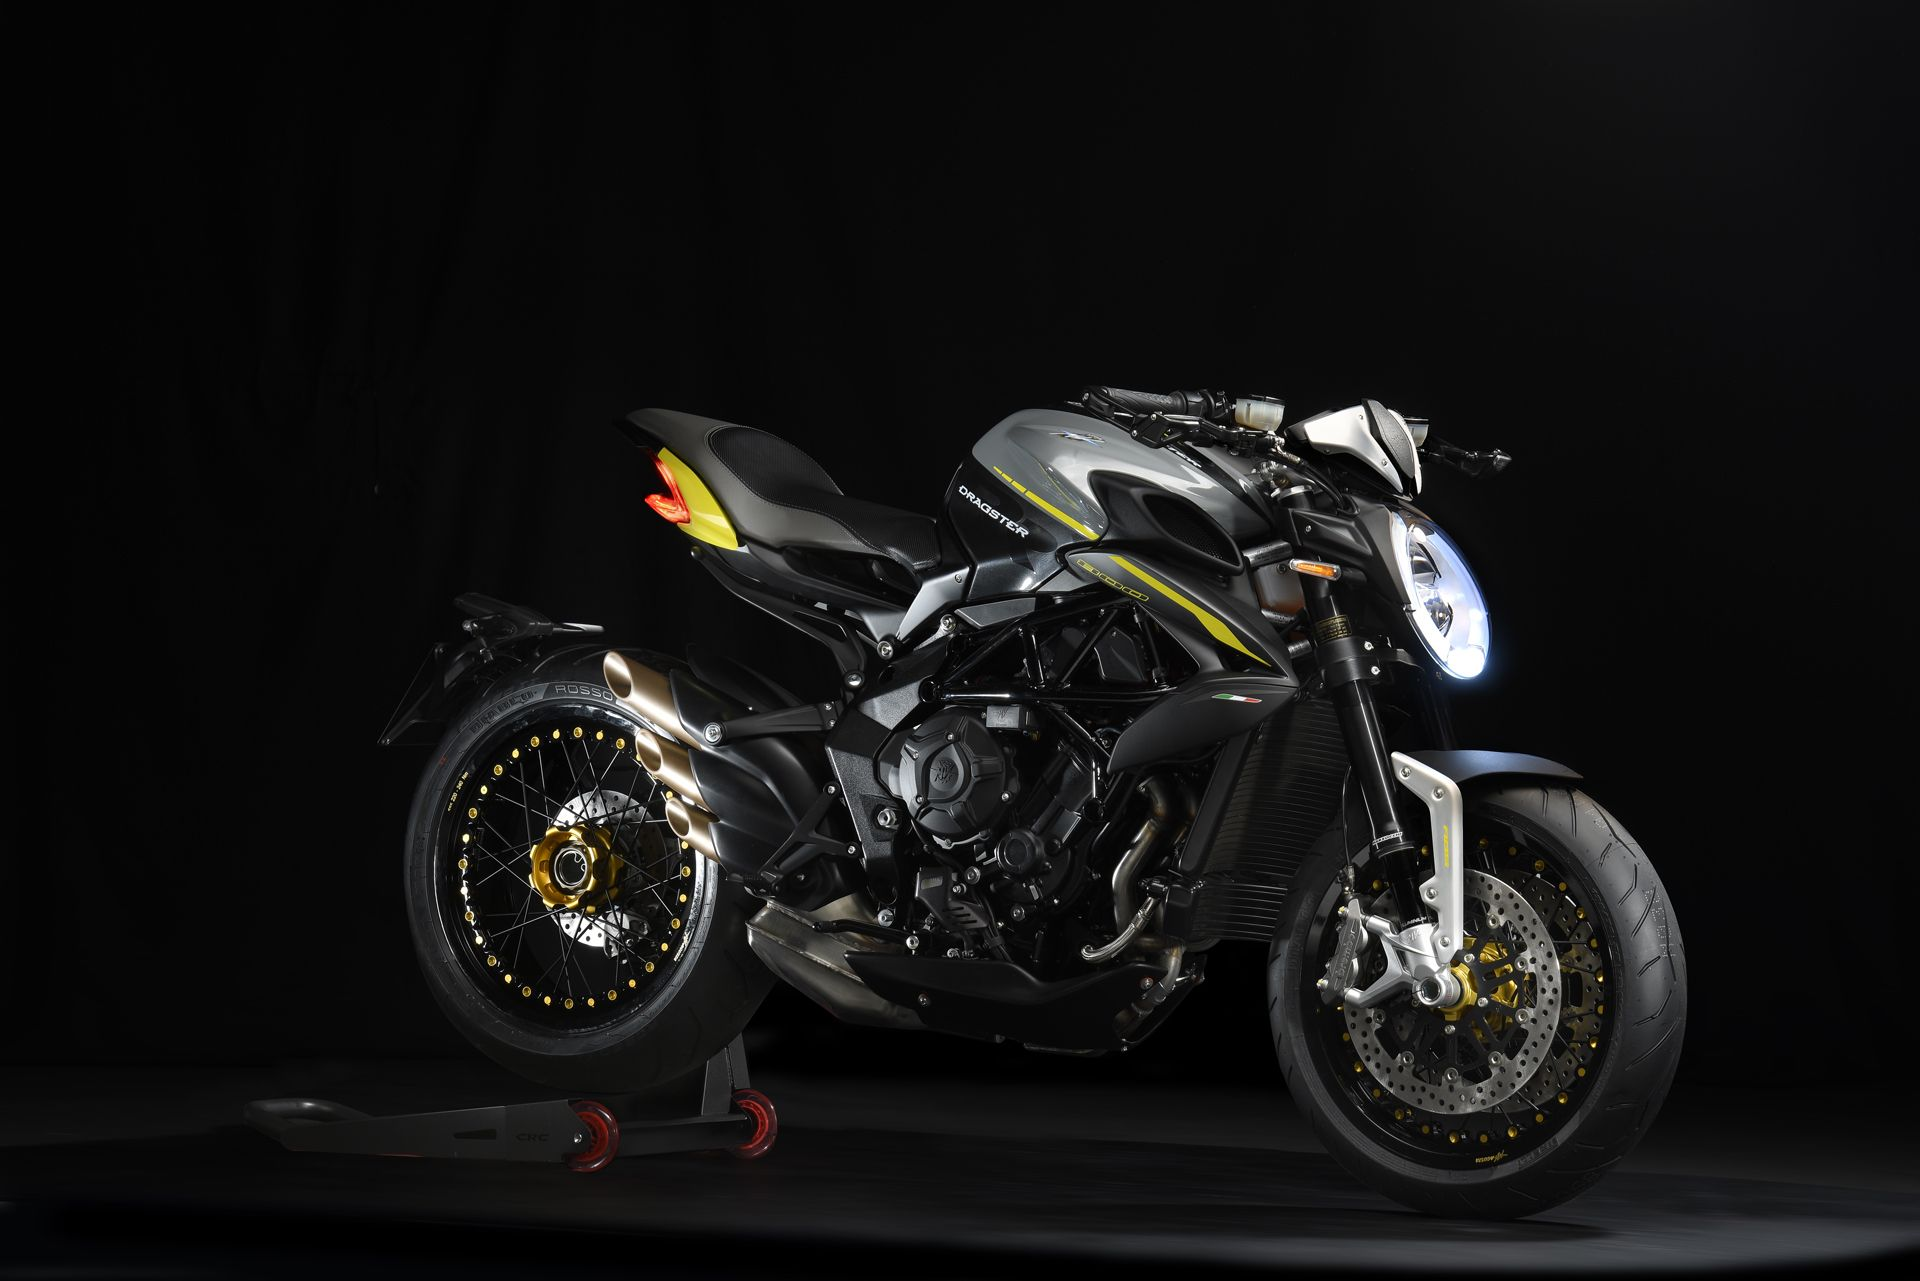 MV Agusta's Motorcycles Boast Impeccable Artistry and Attention To Detail